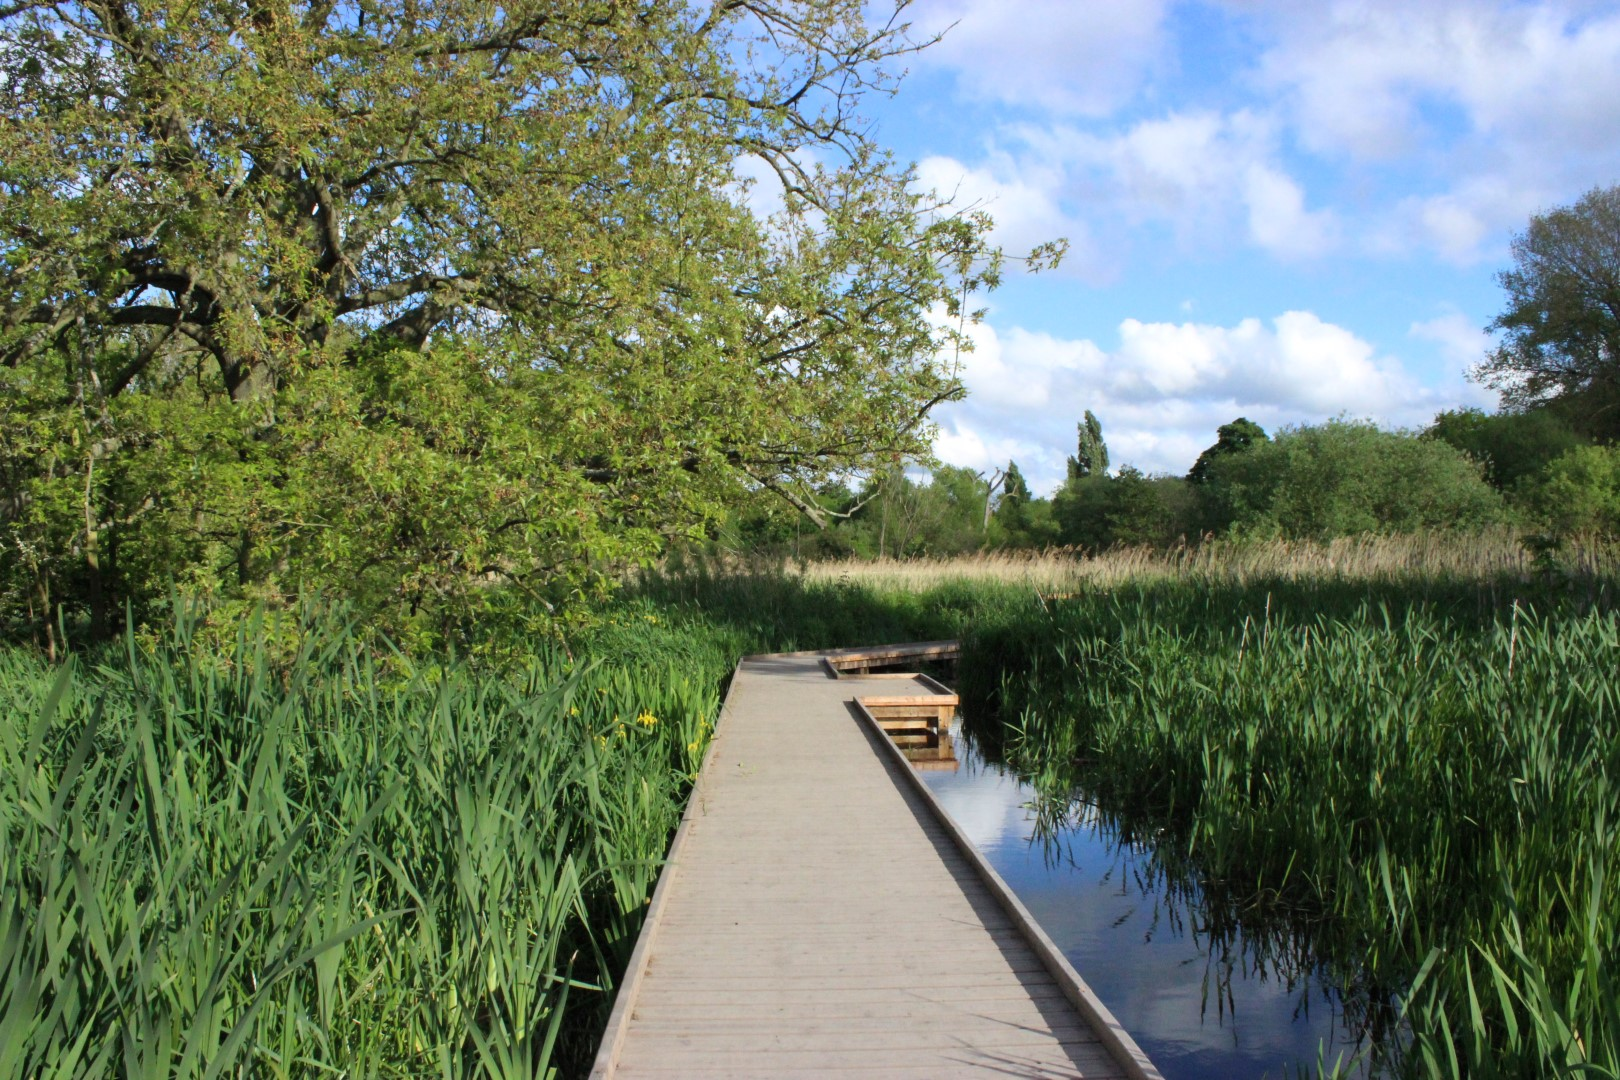 River Wandle - Explore an animal farm, markets, the remains of an old chapter house and a National Trust park